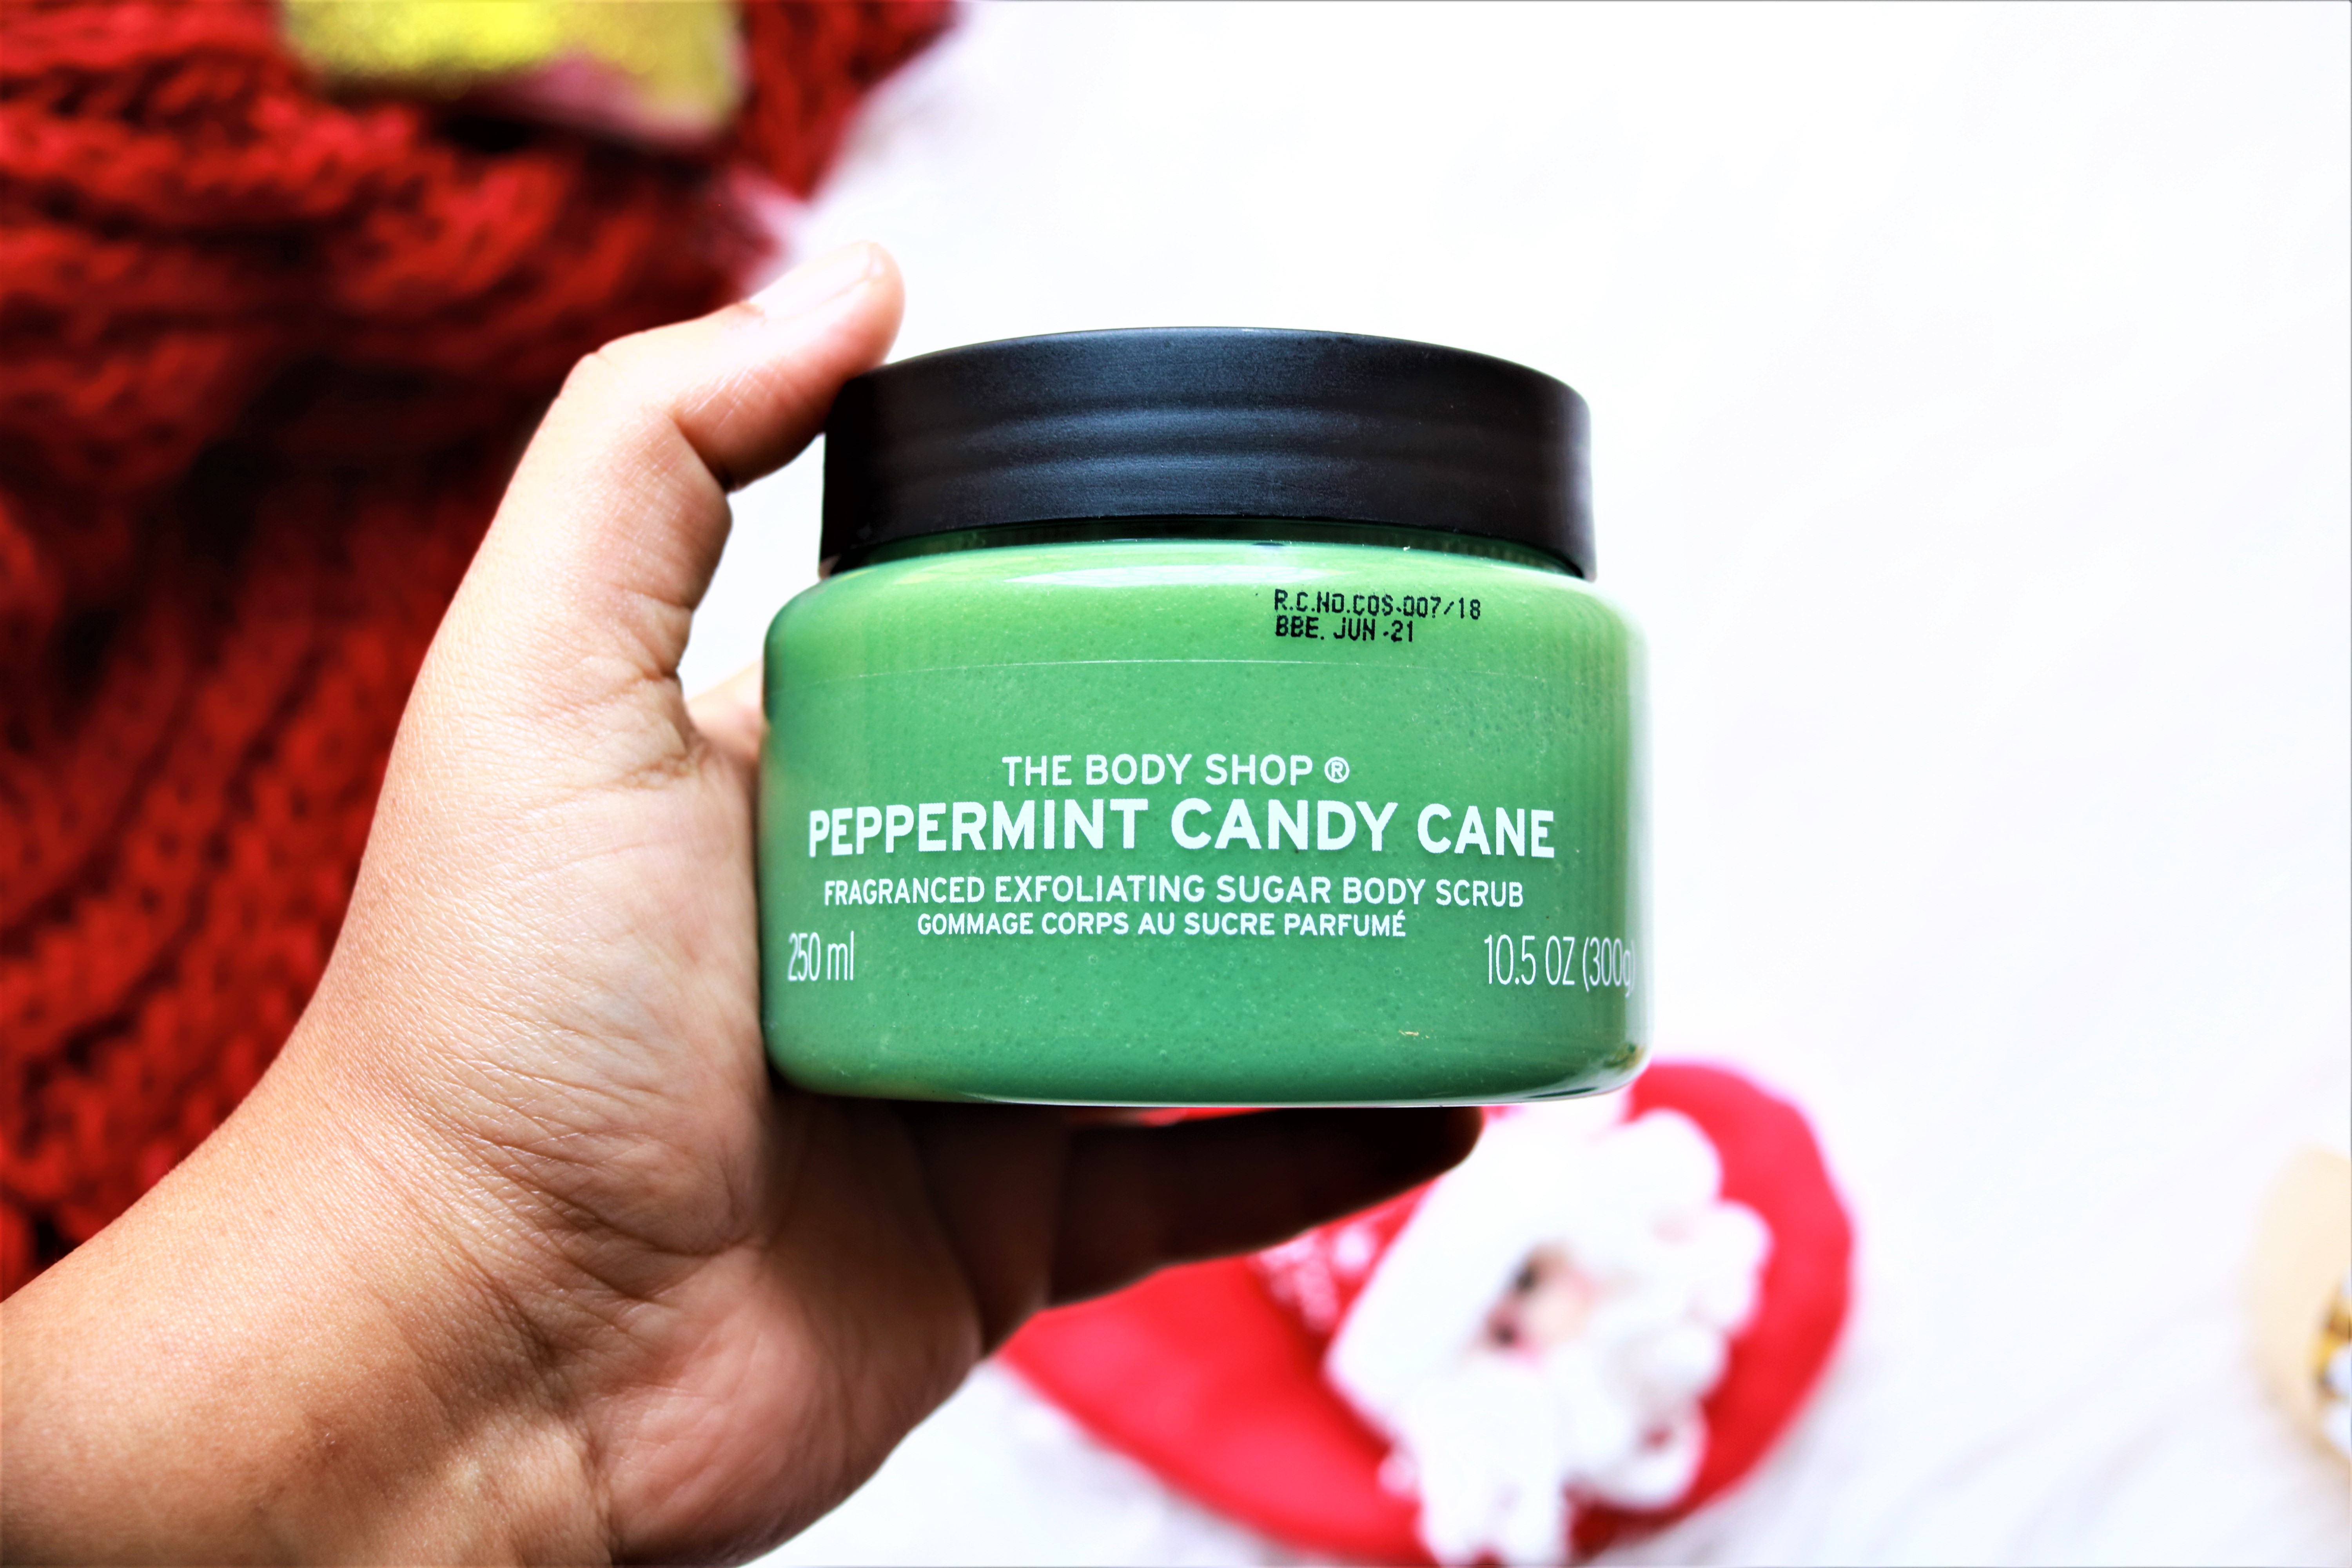 The Body Shop Peppermint Candy Cane Archives Pout Pretty